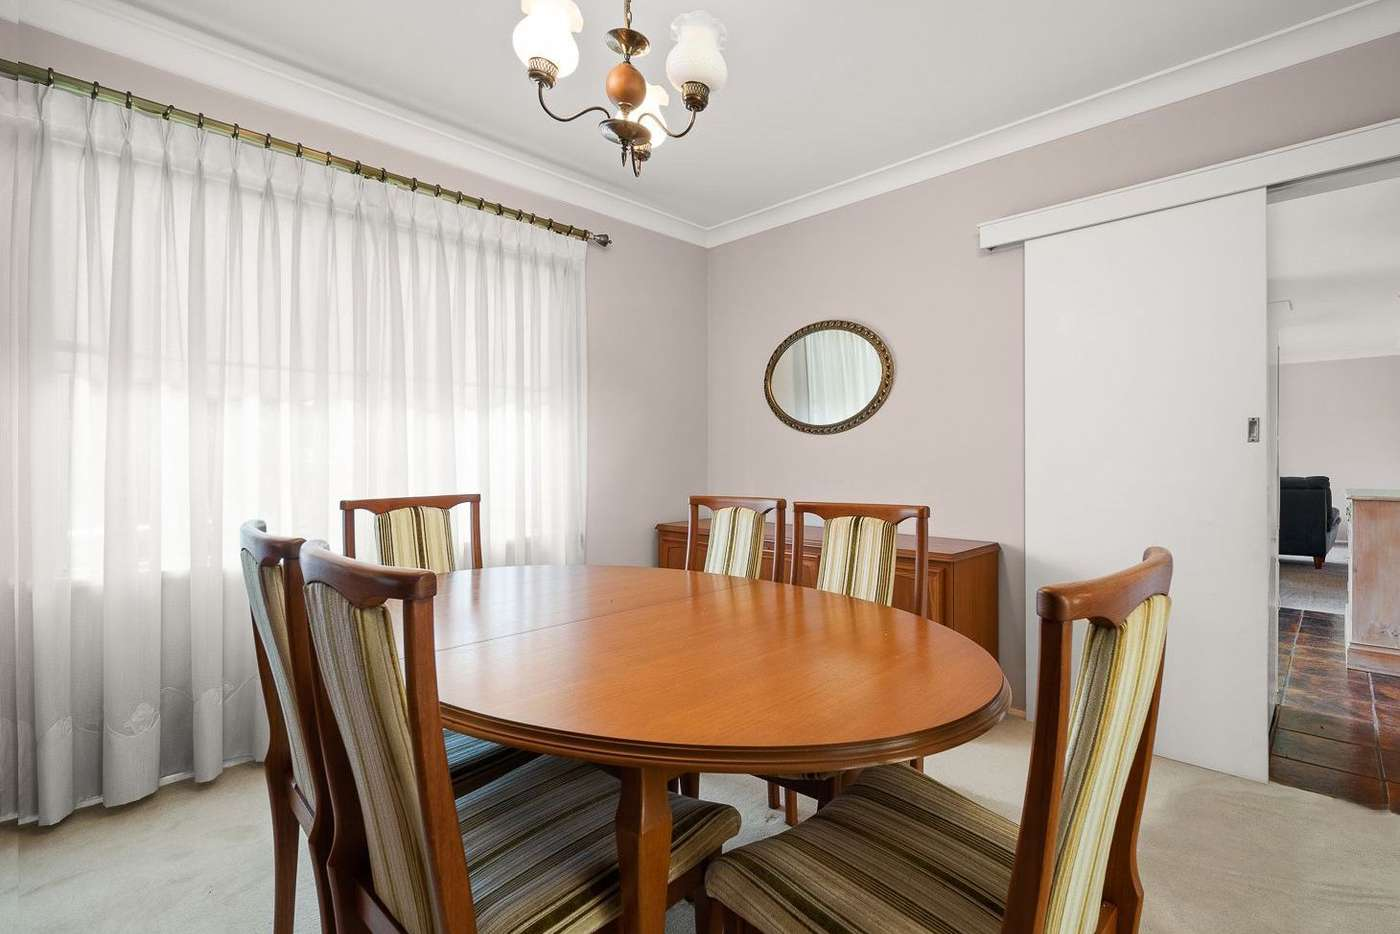 Fifth view of Homely house listing, 6 Tongarra Place, Westleigh NSW 2120